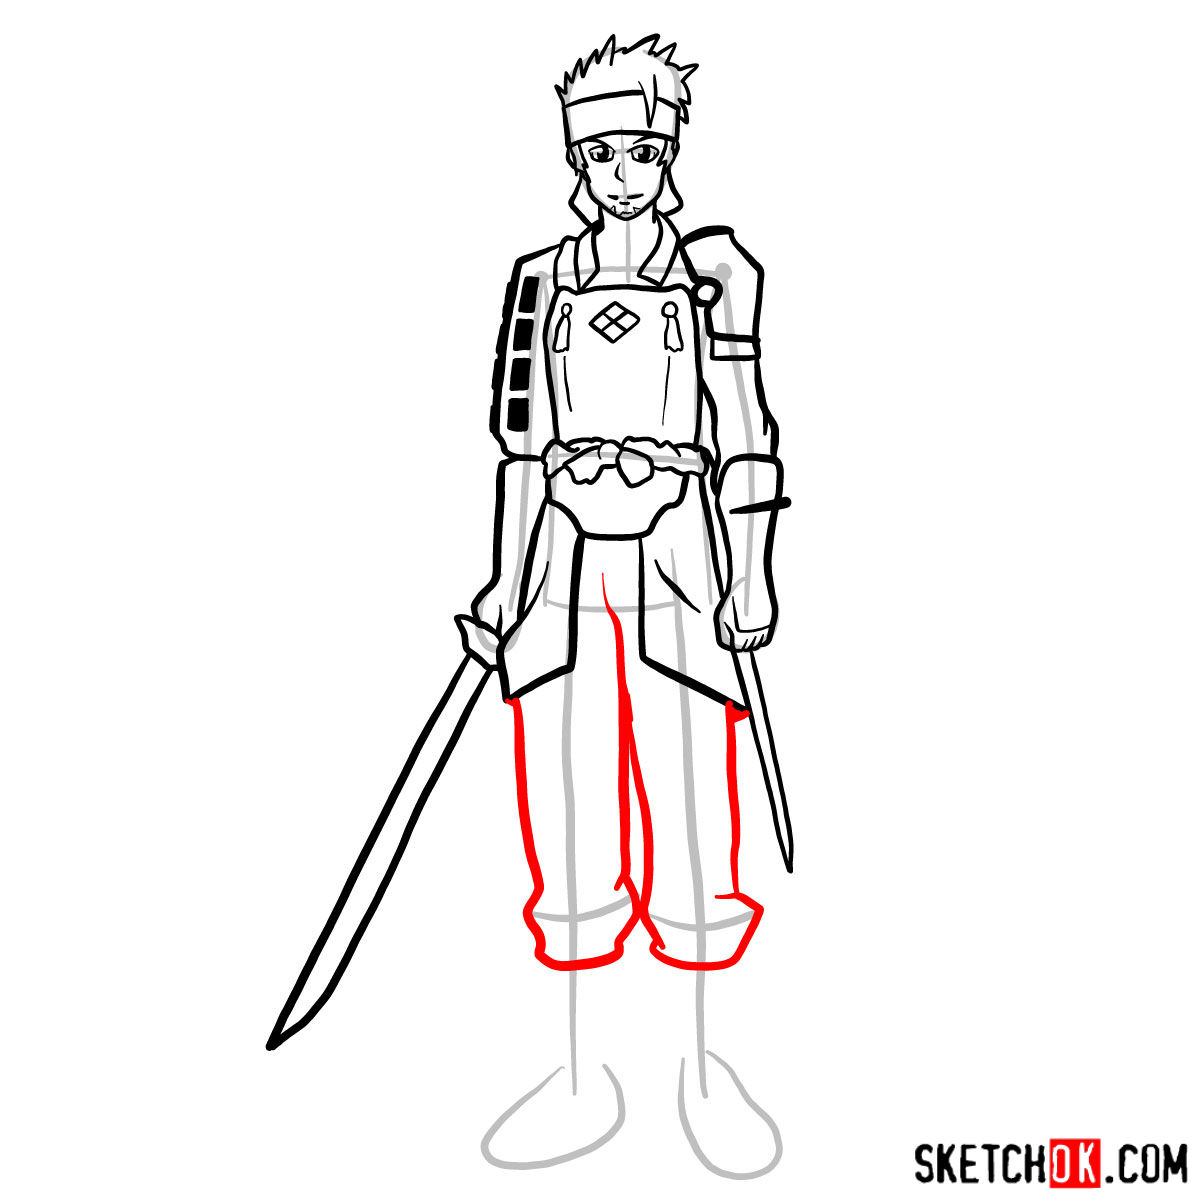 How to draw Klein from Sword Art Online - step 13